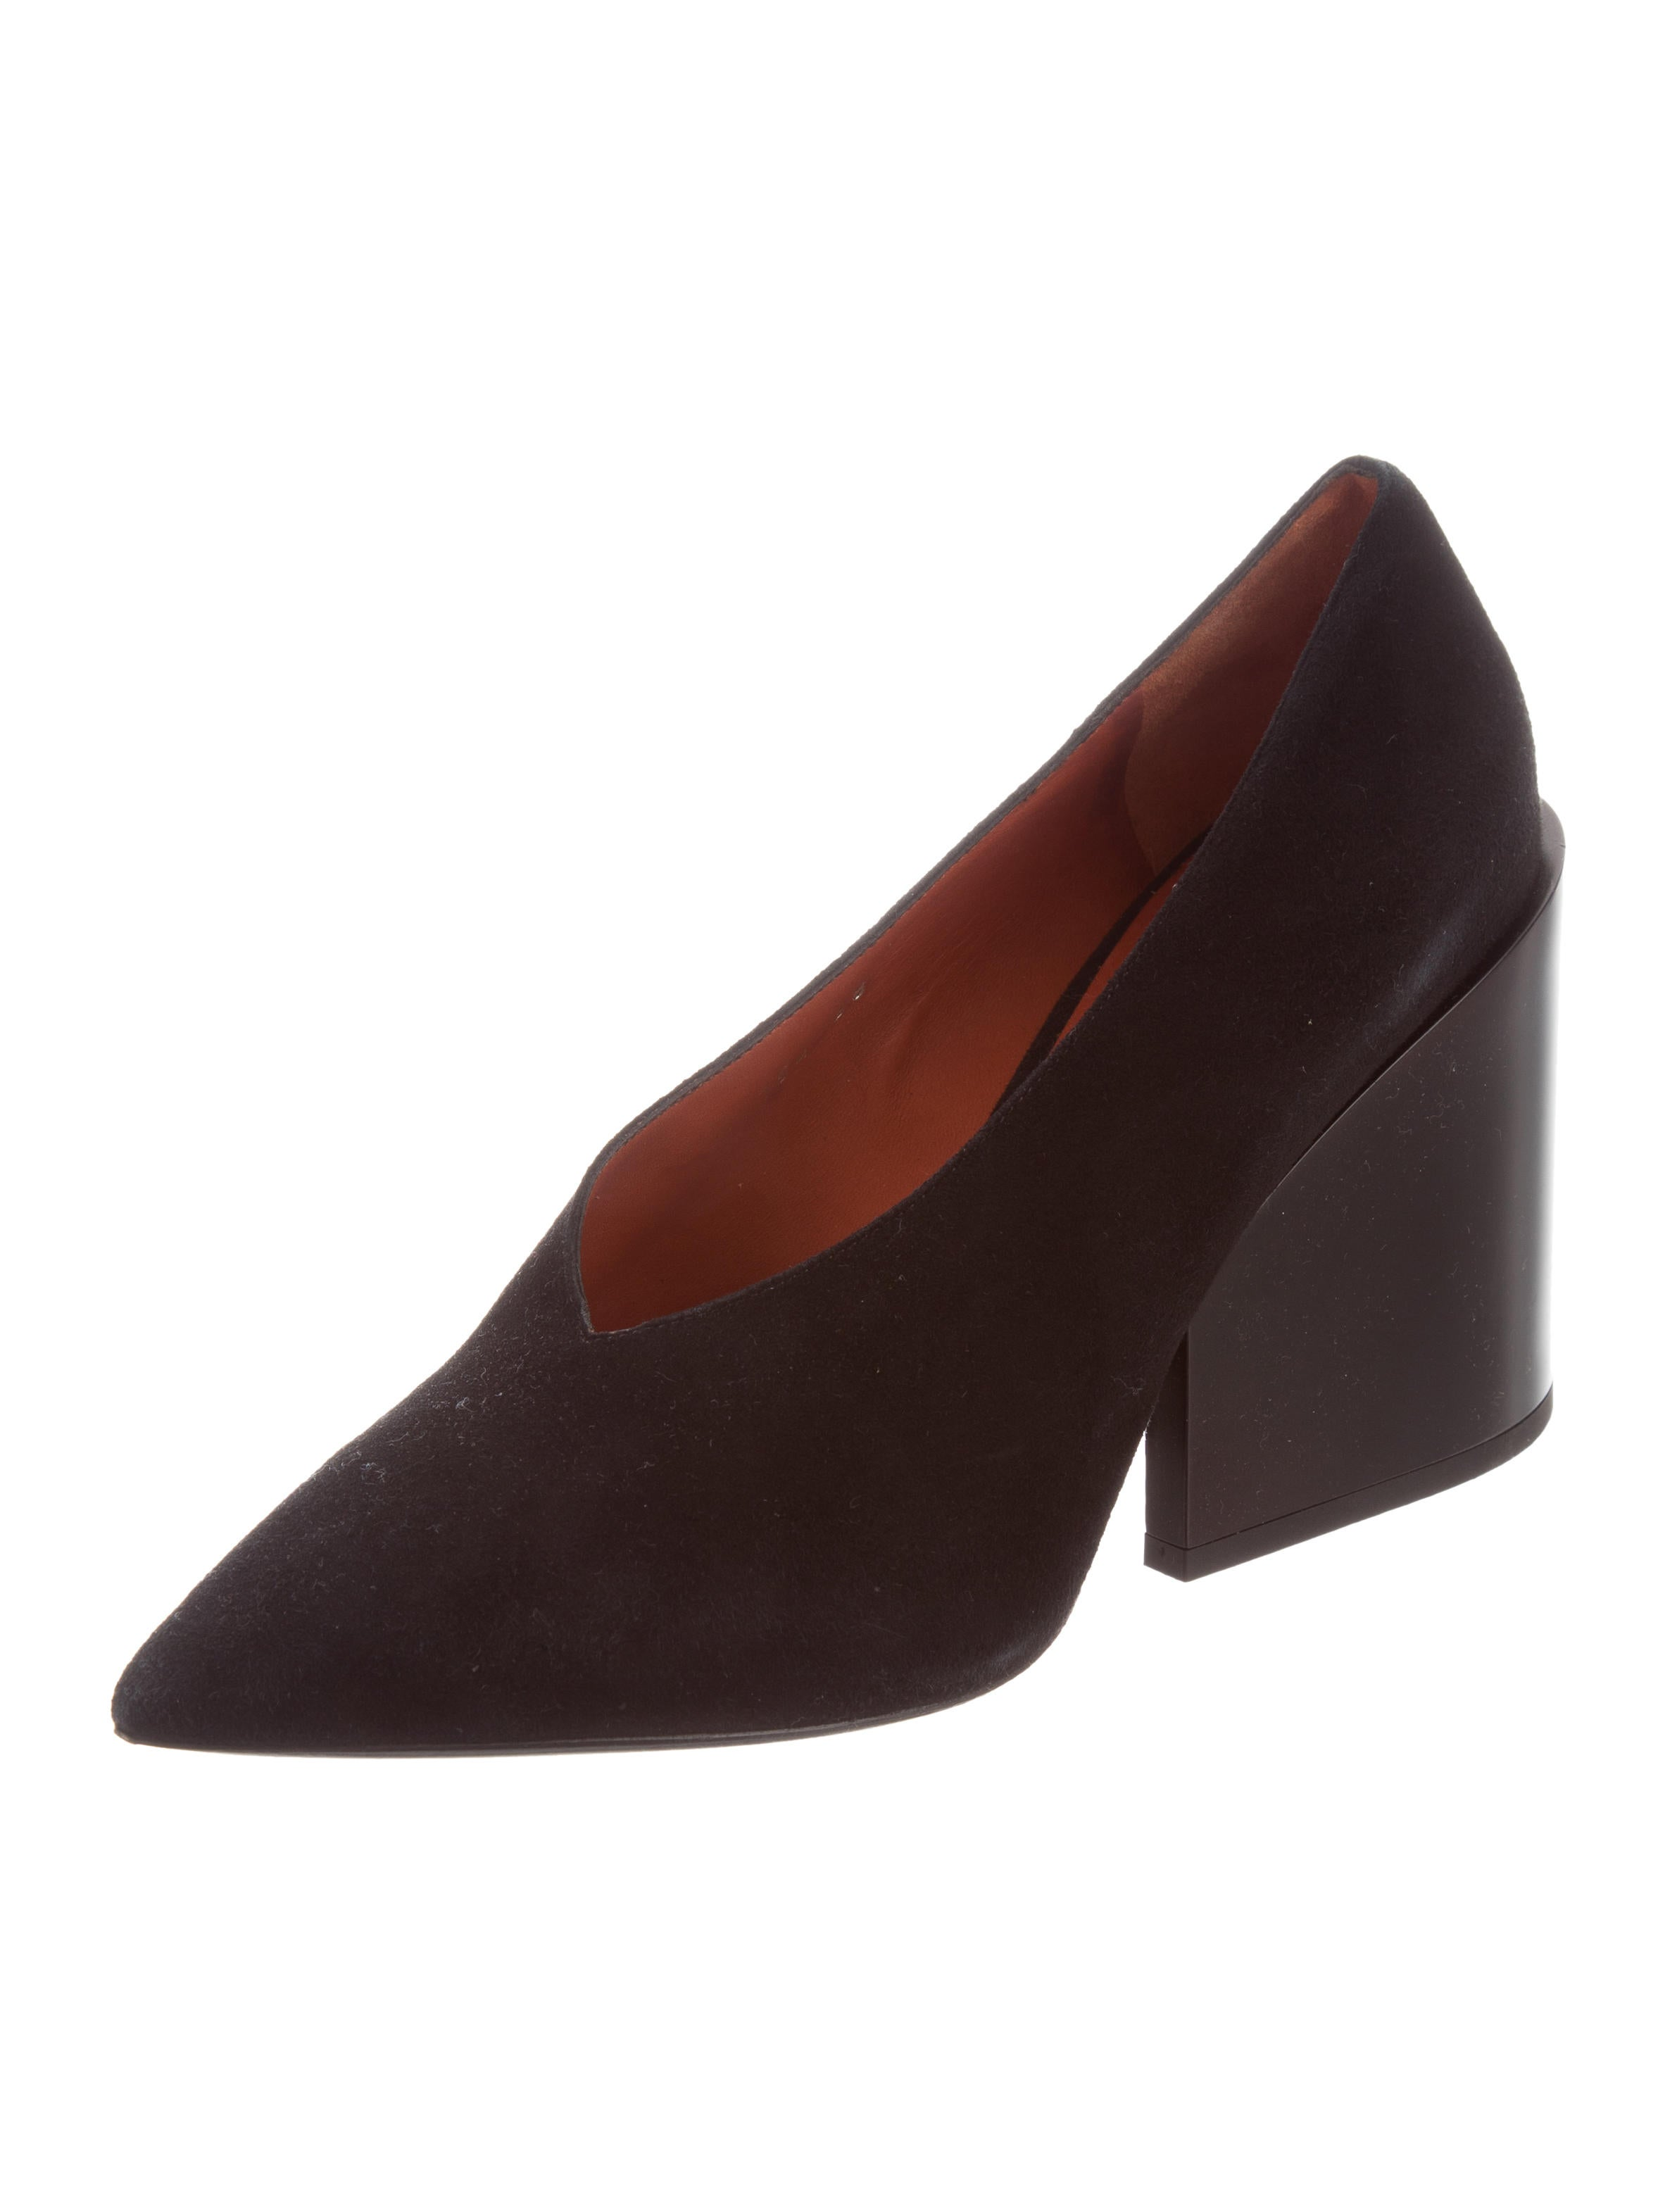 Acne Studios Alvara Suede Pumps w/ Tags release dates authentic discount manchester great sale footaction cheap price shop offer cheap online 2014 unisex giGlneQS